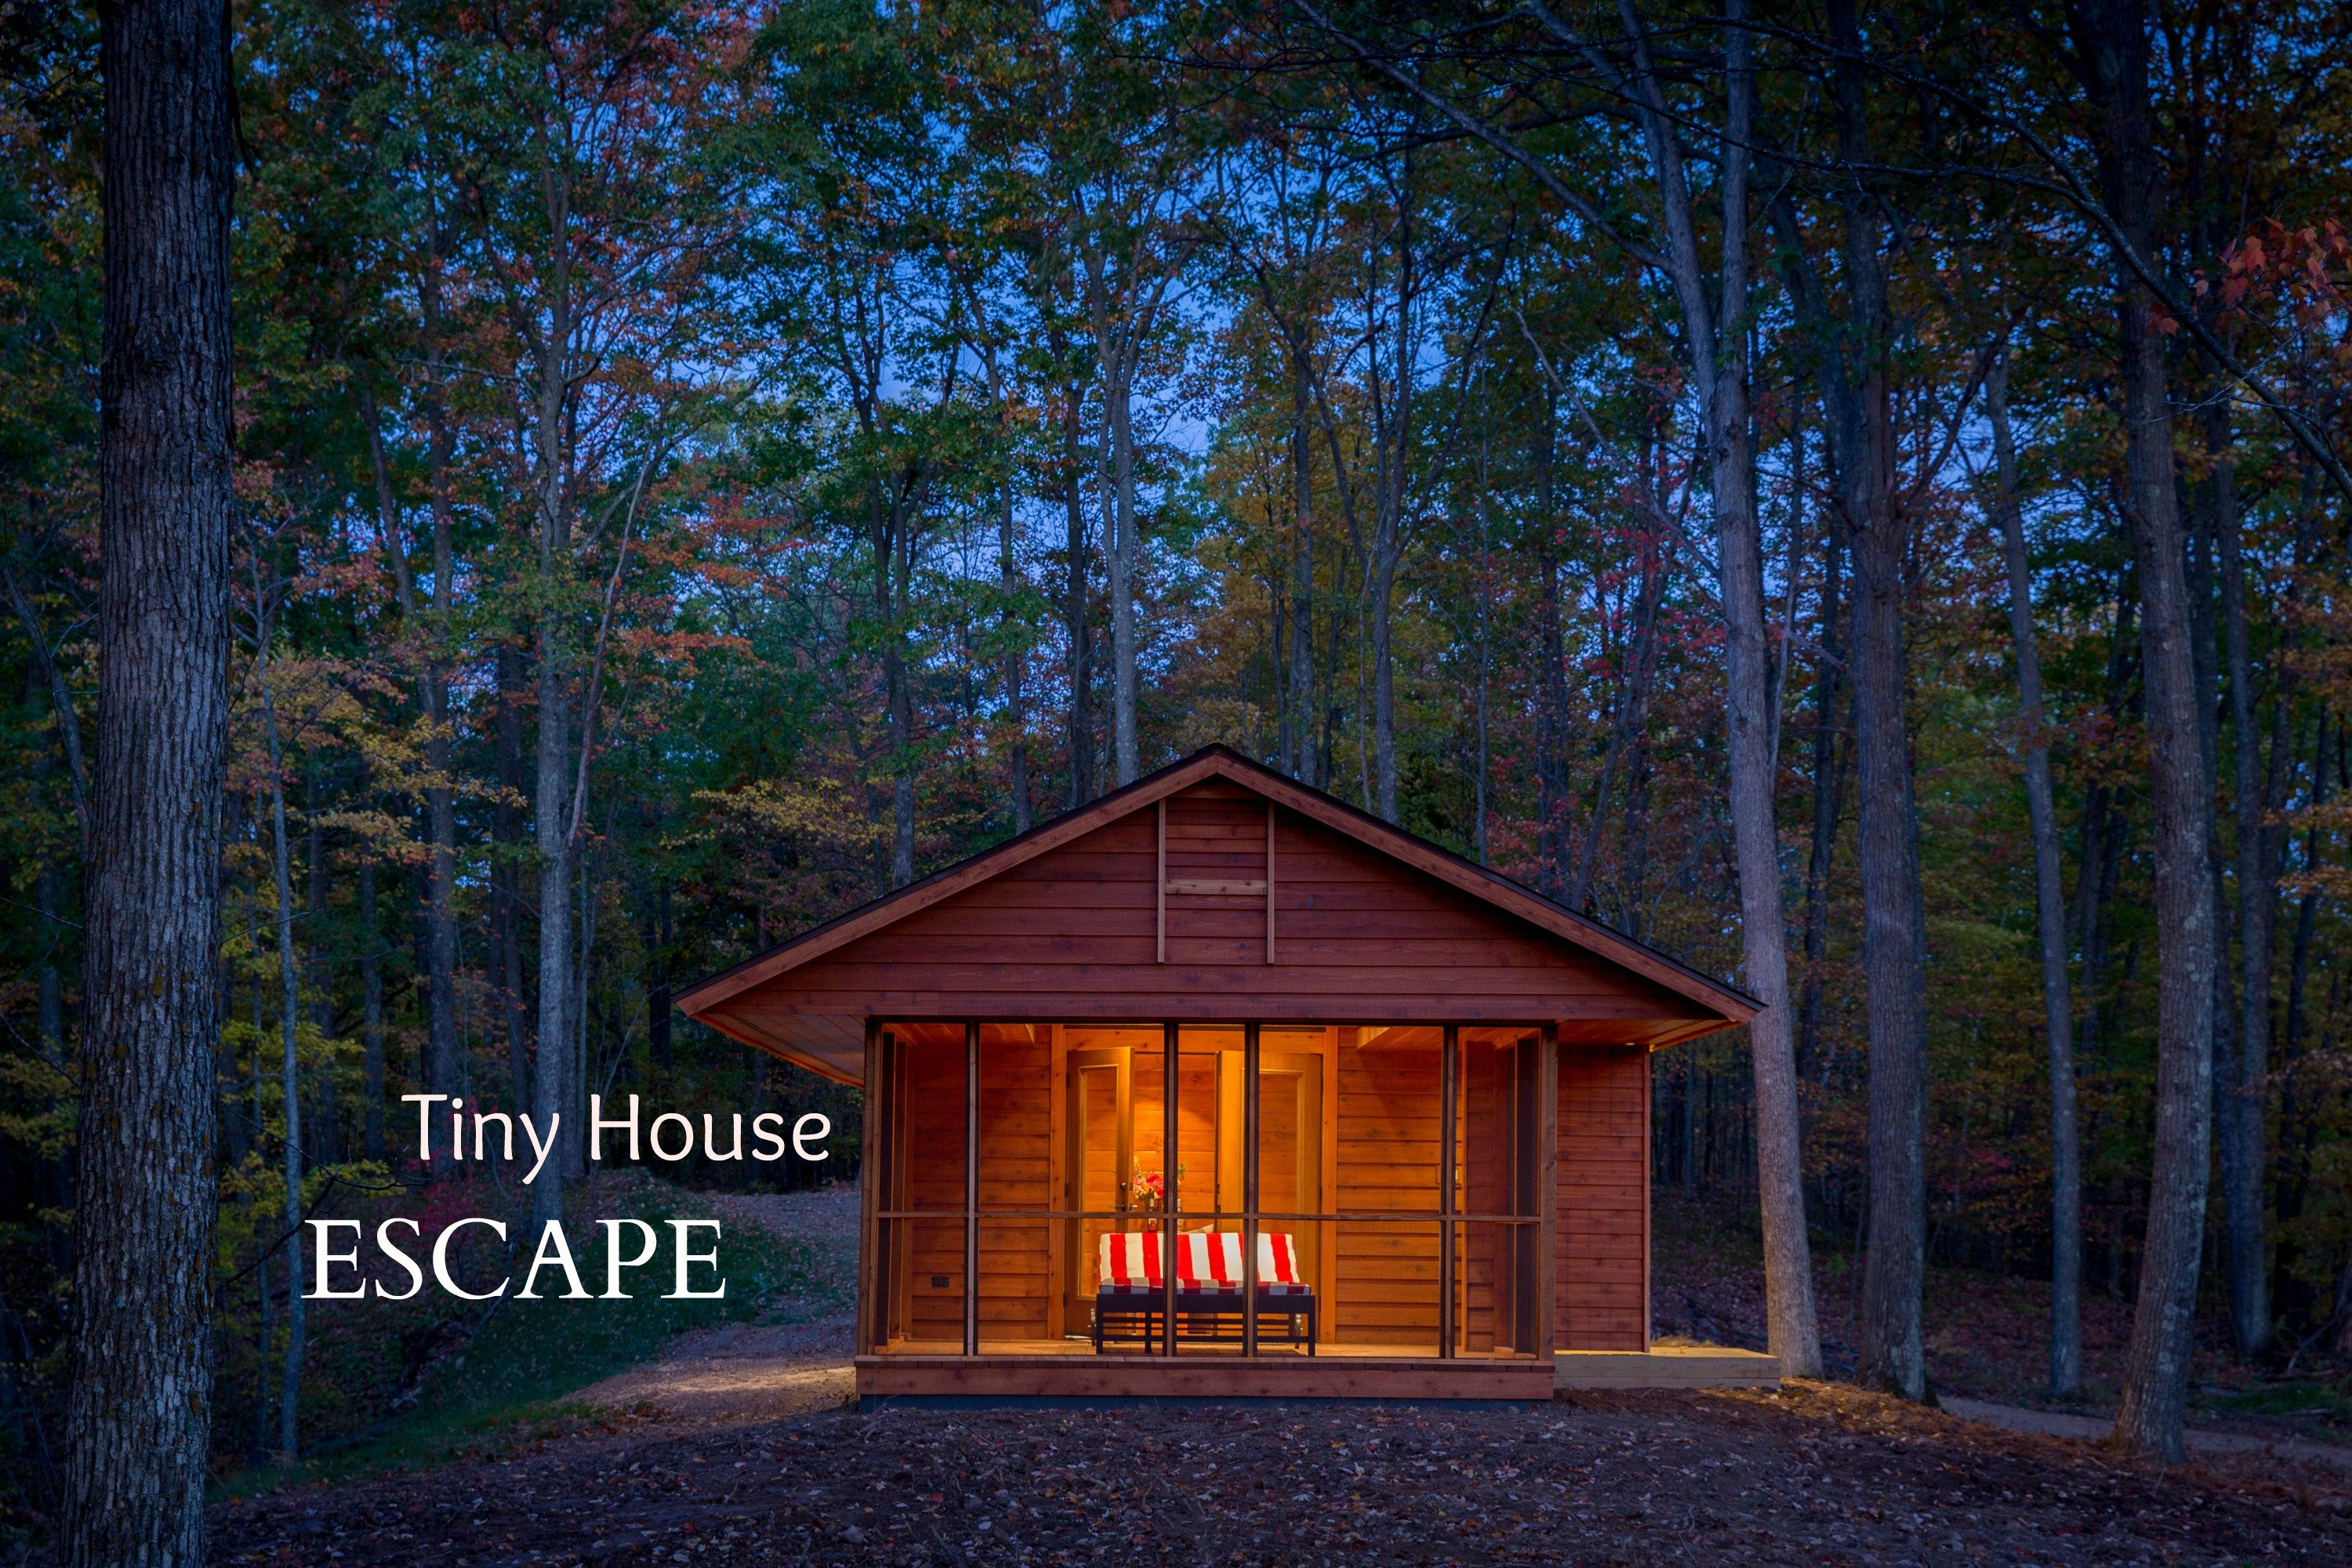 Tiny house escape in canoe bay is a cabin rv Tiny cabin